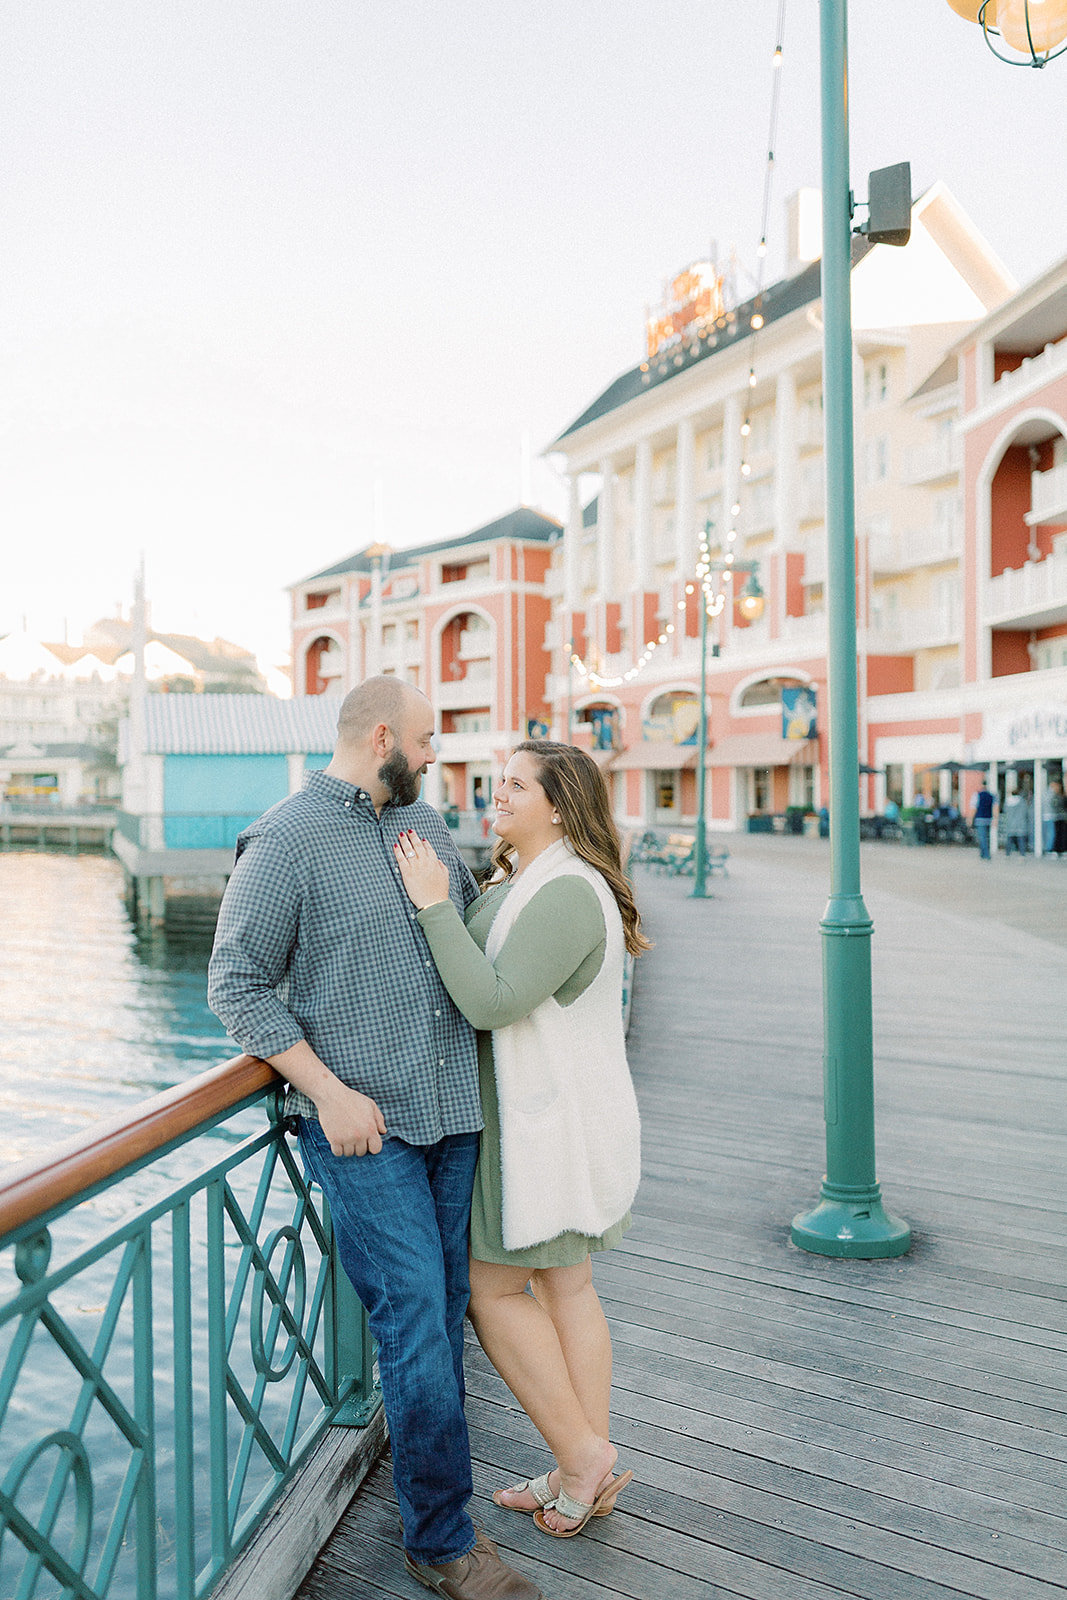 Larisa_+_Craig_Disney_Epcot_Boardwalk_Resort_Engagement_Session_Photographer_Casie_Marie_Photography-71